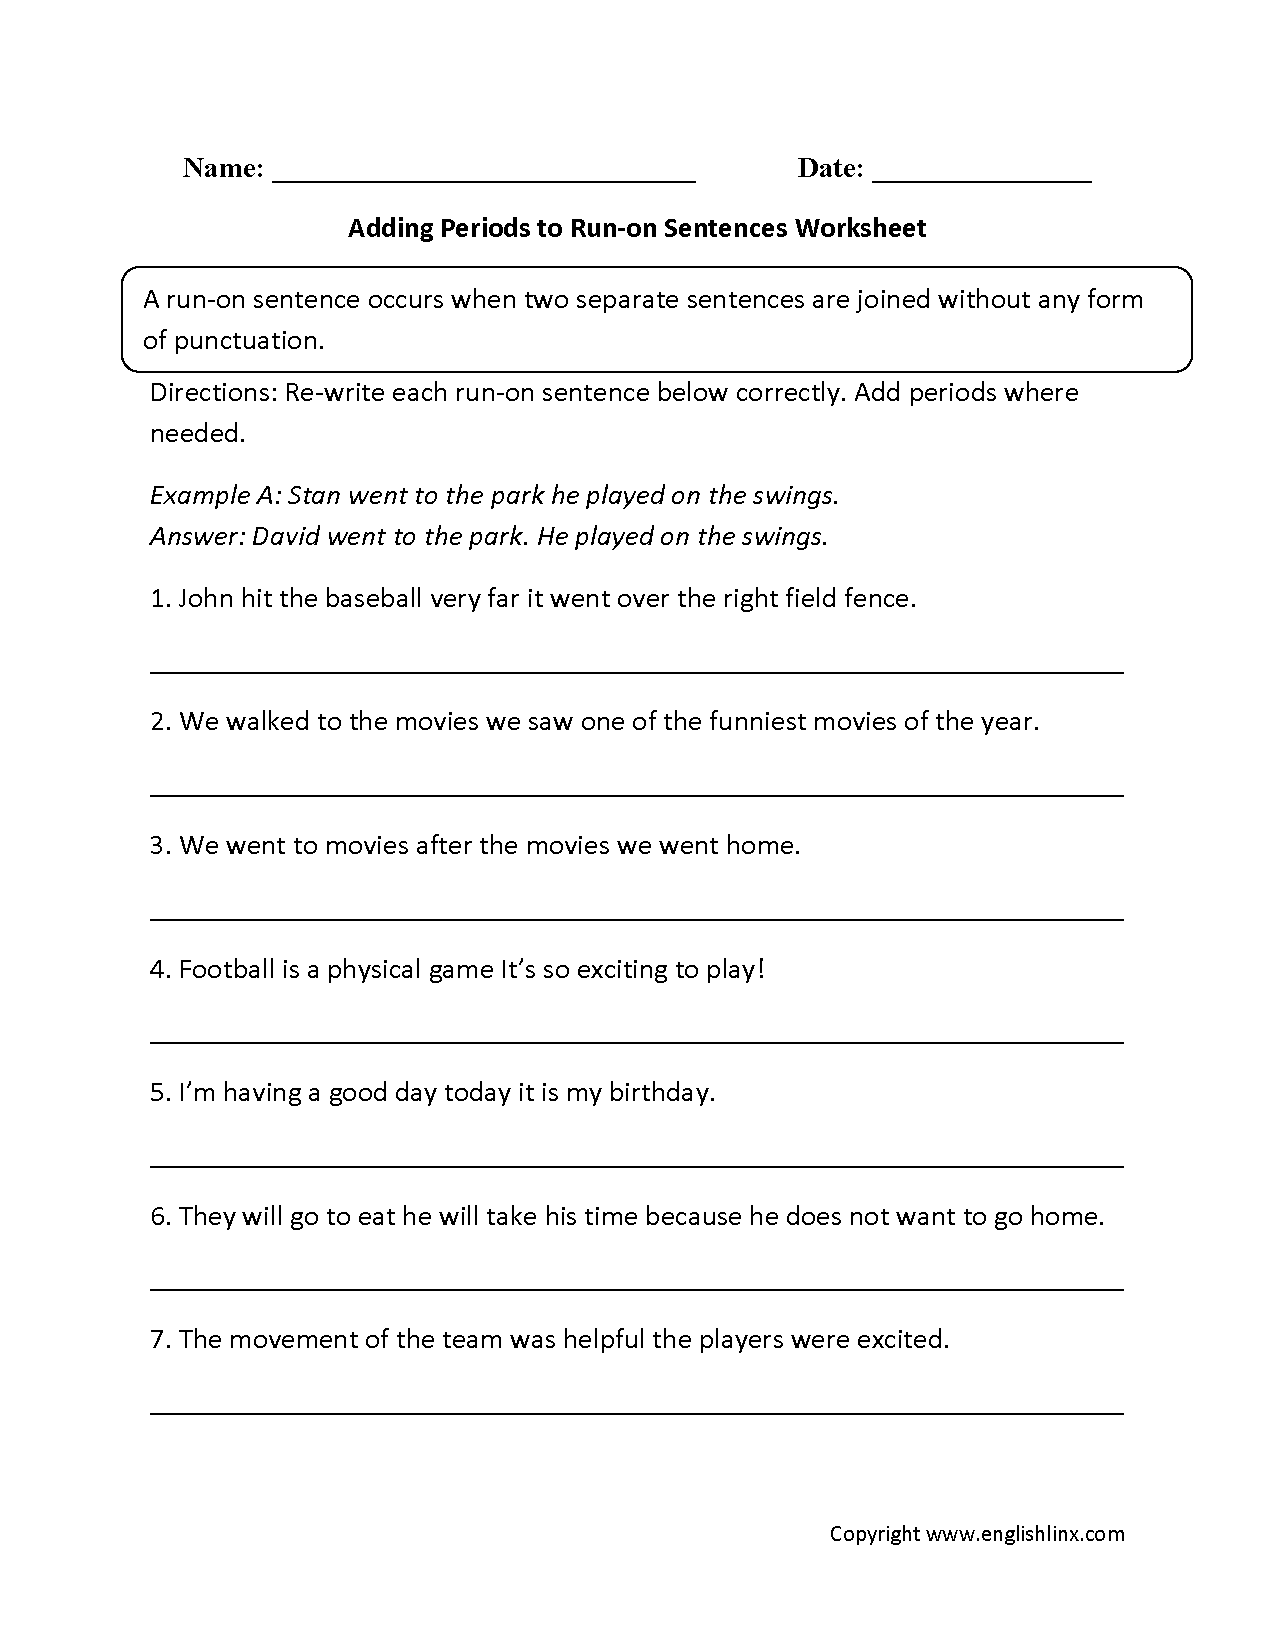 Adding Periods to Run on Sentences Worksheets | Grammatically Minded ...